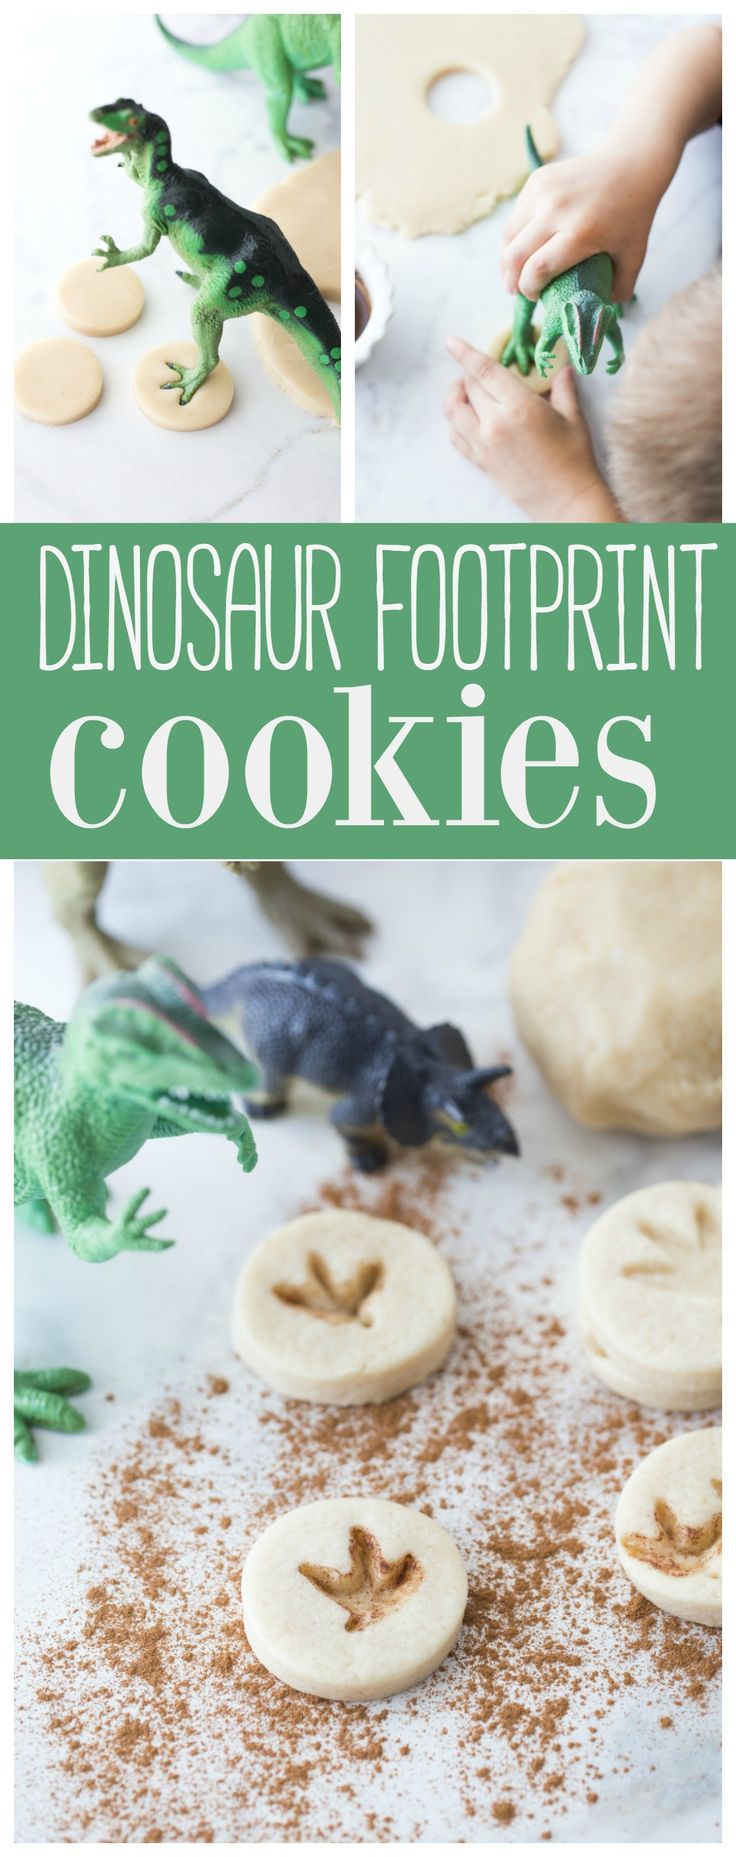 These Dinosaur Footprint Cookies are such a fun edible treat for all your little dinosaur lovers. Your kids will love pressing the Dinosaur foot into their cookies.